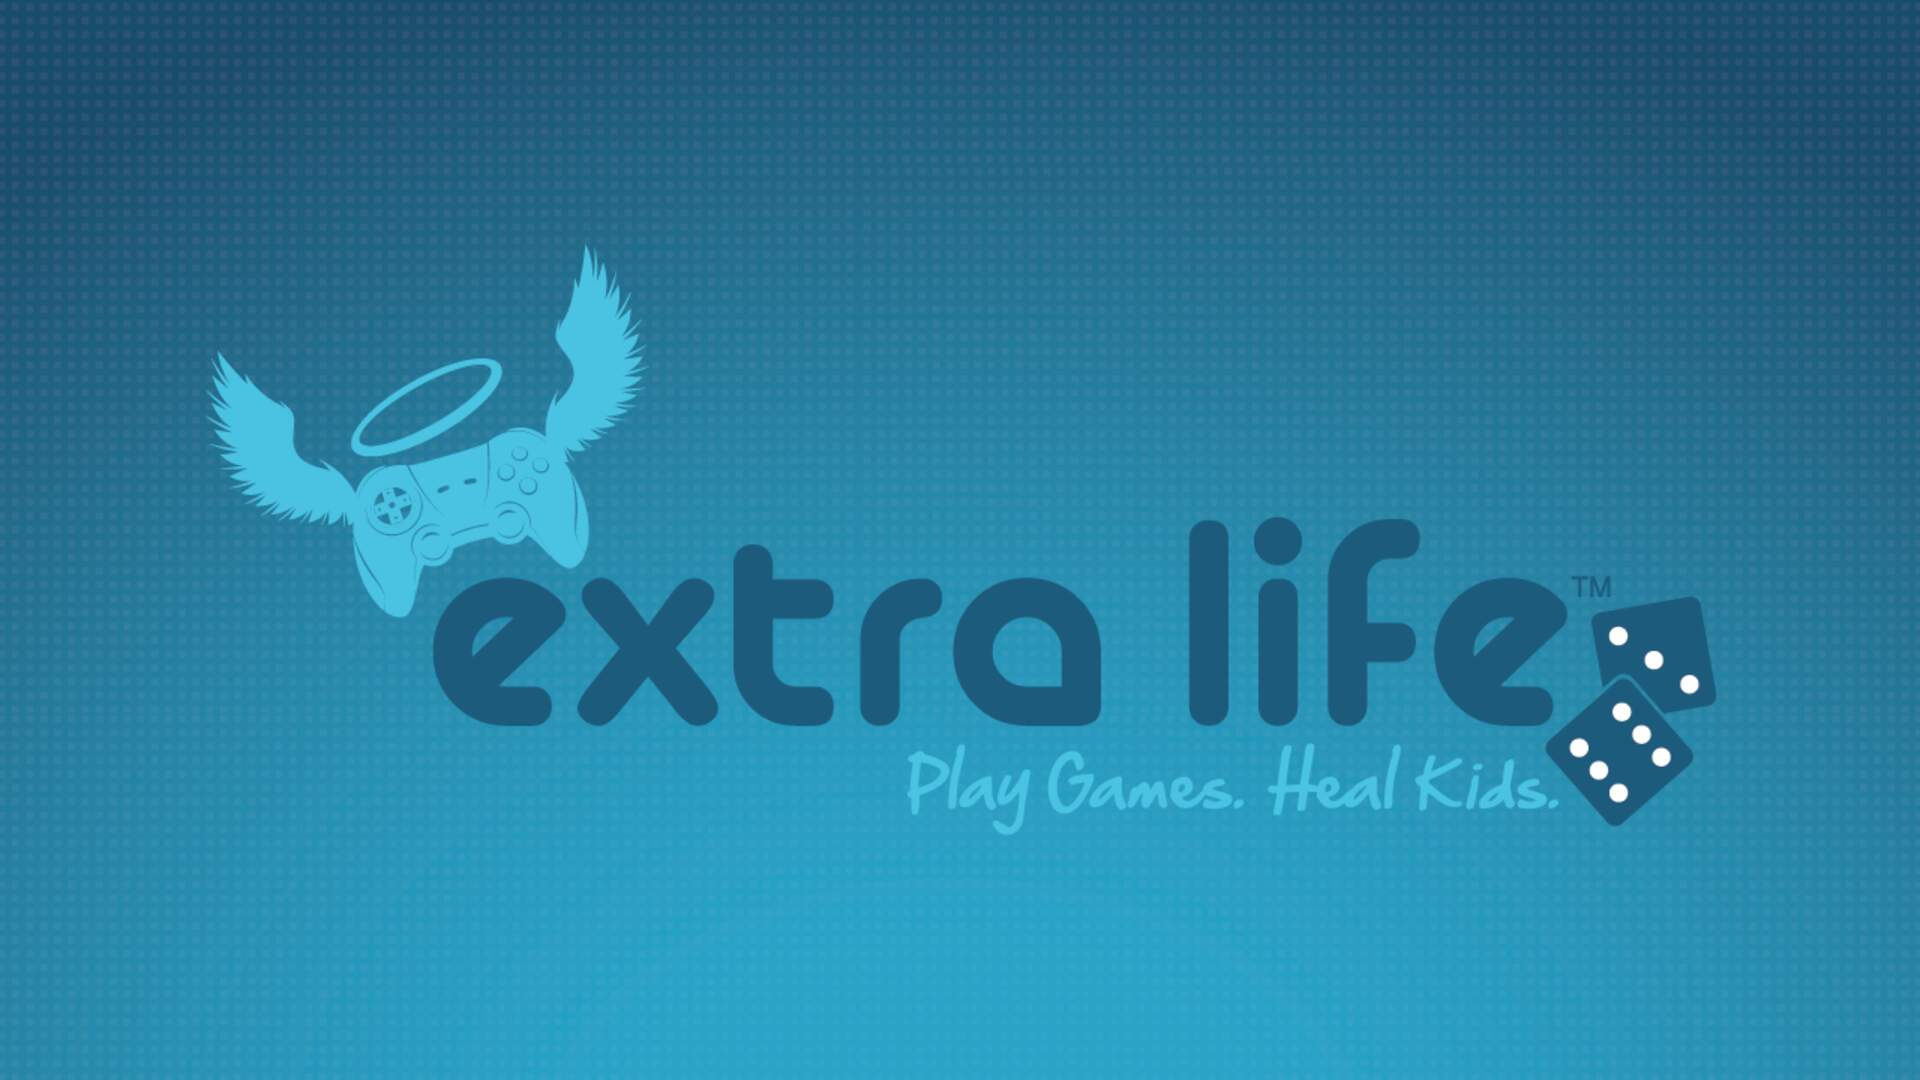 A Thank You From USgamer For Extra Life 2019